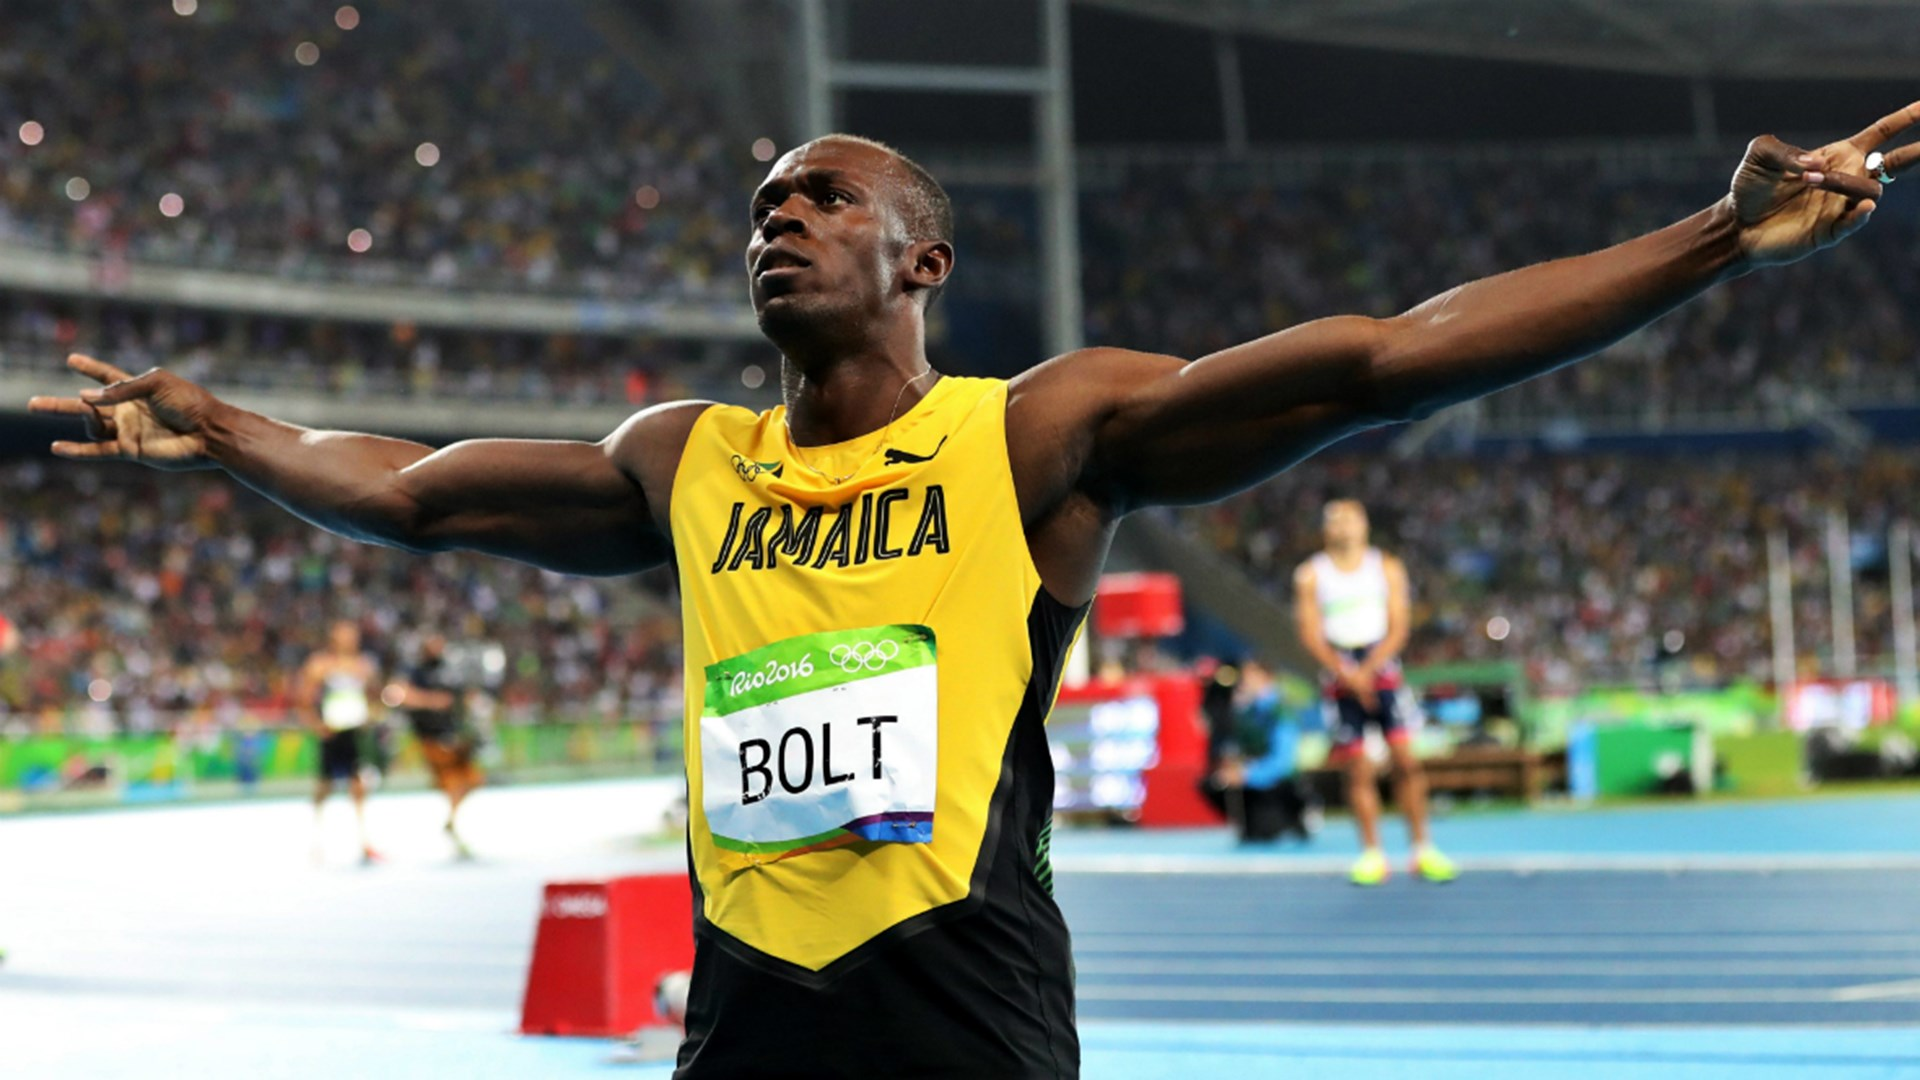 Rio Olympics 2016 Usain Bolt Wins 200m Gold His Eighth Olympic